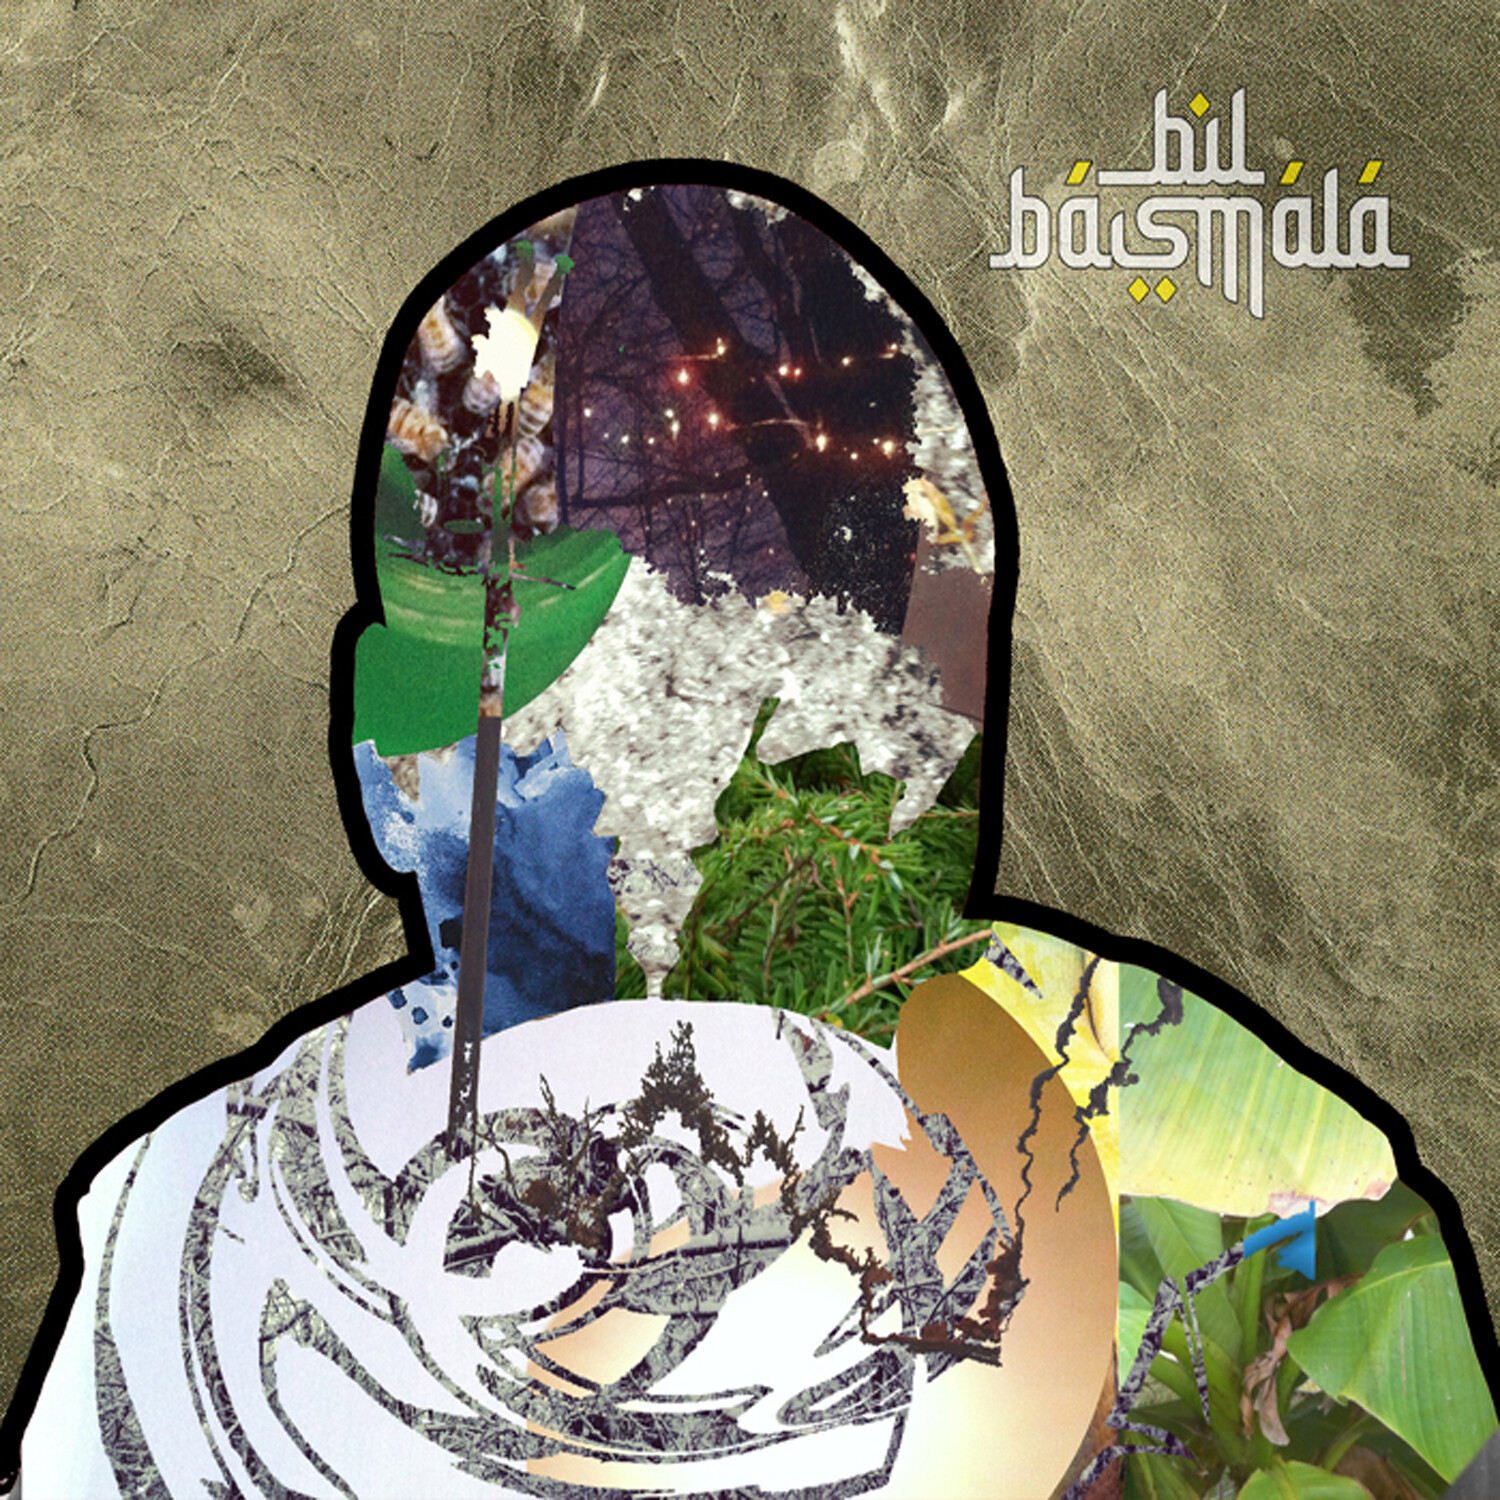 Bil Basmala - Self Titled